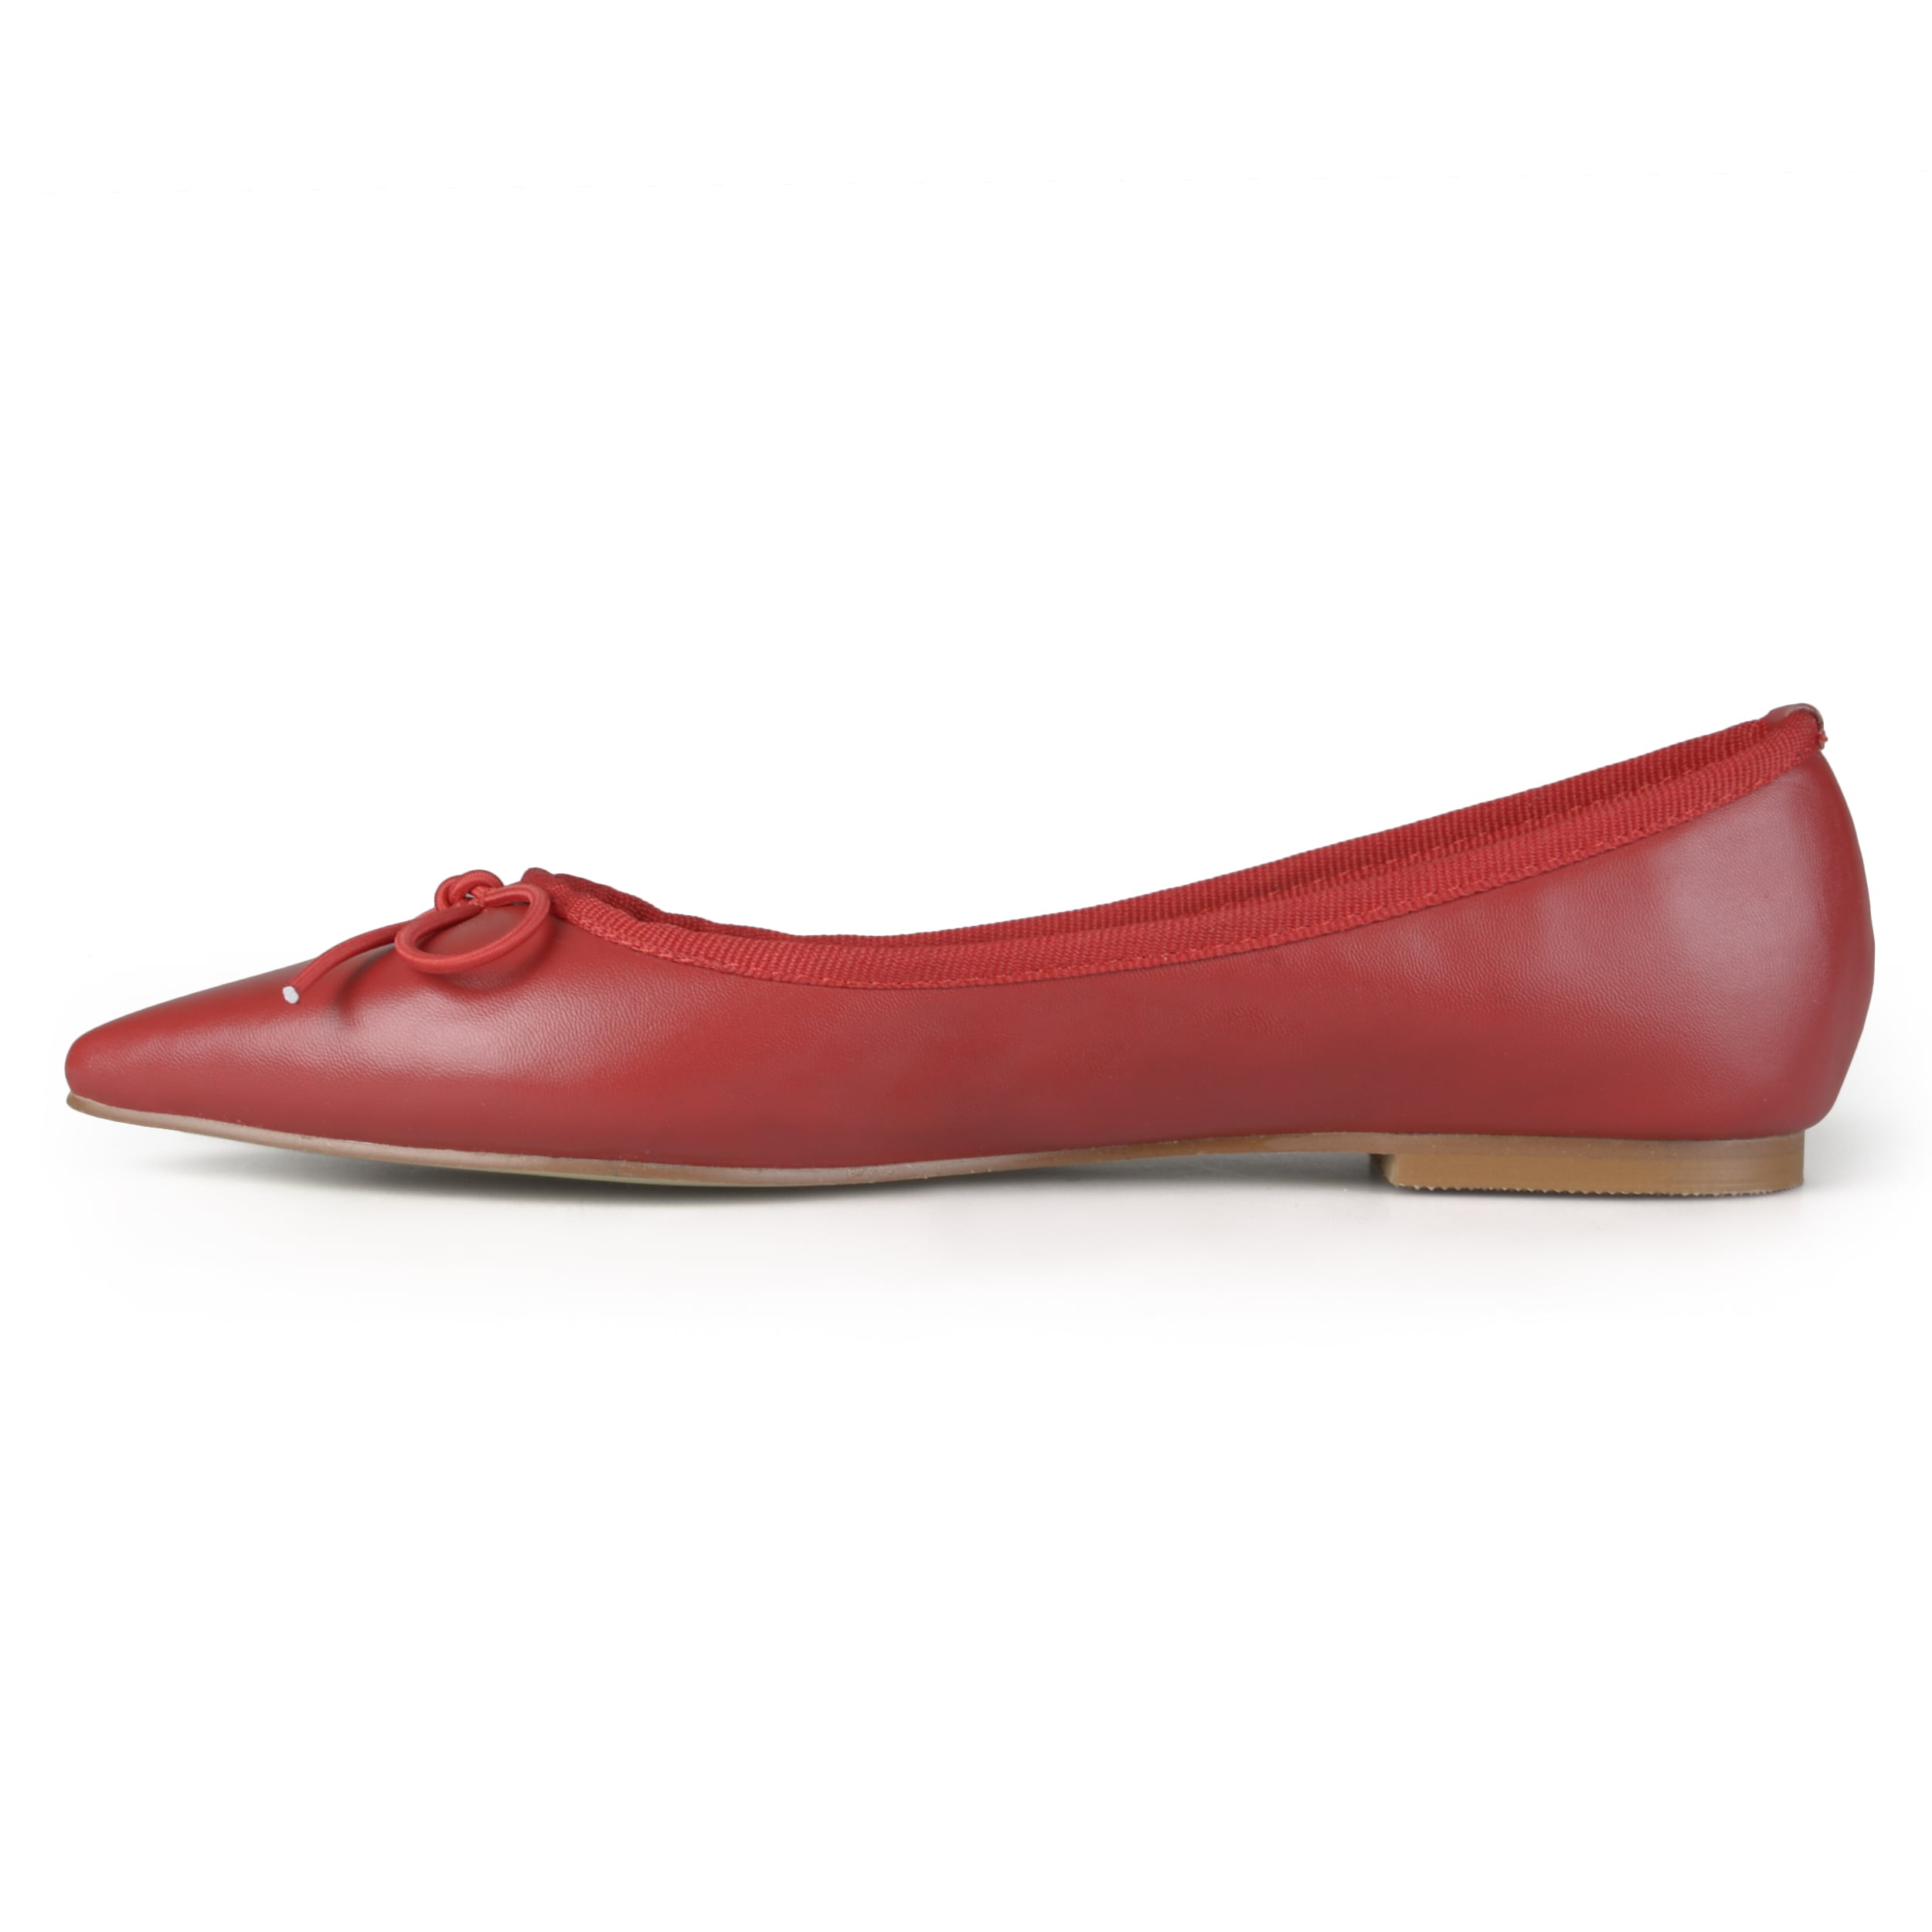 Journee Collection Lena ... Women's Pointed Ballet Flats 4HlgM